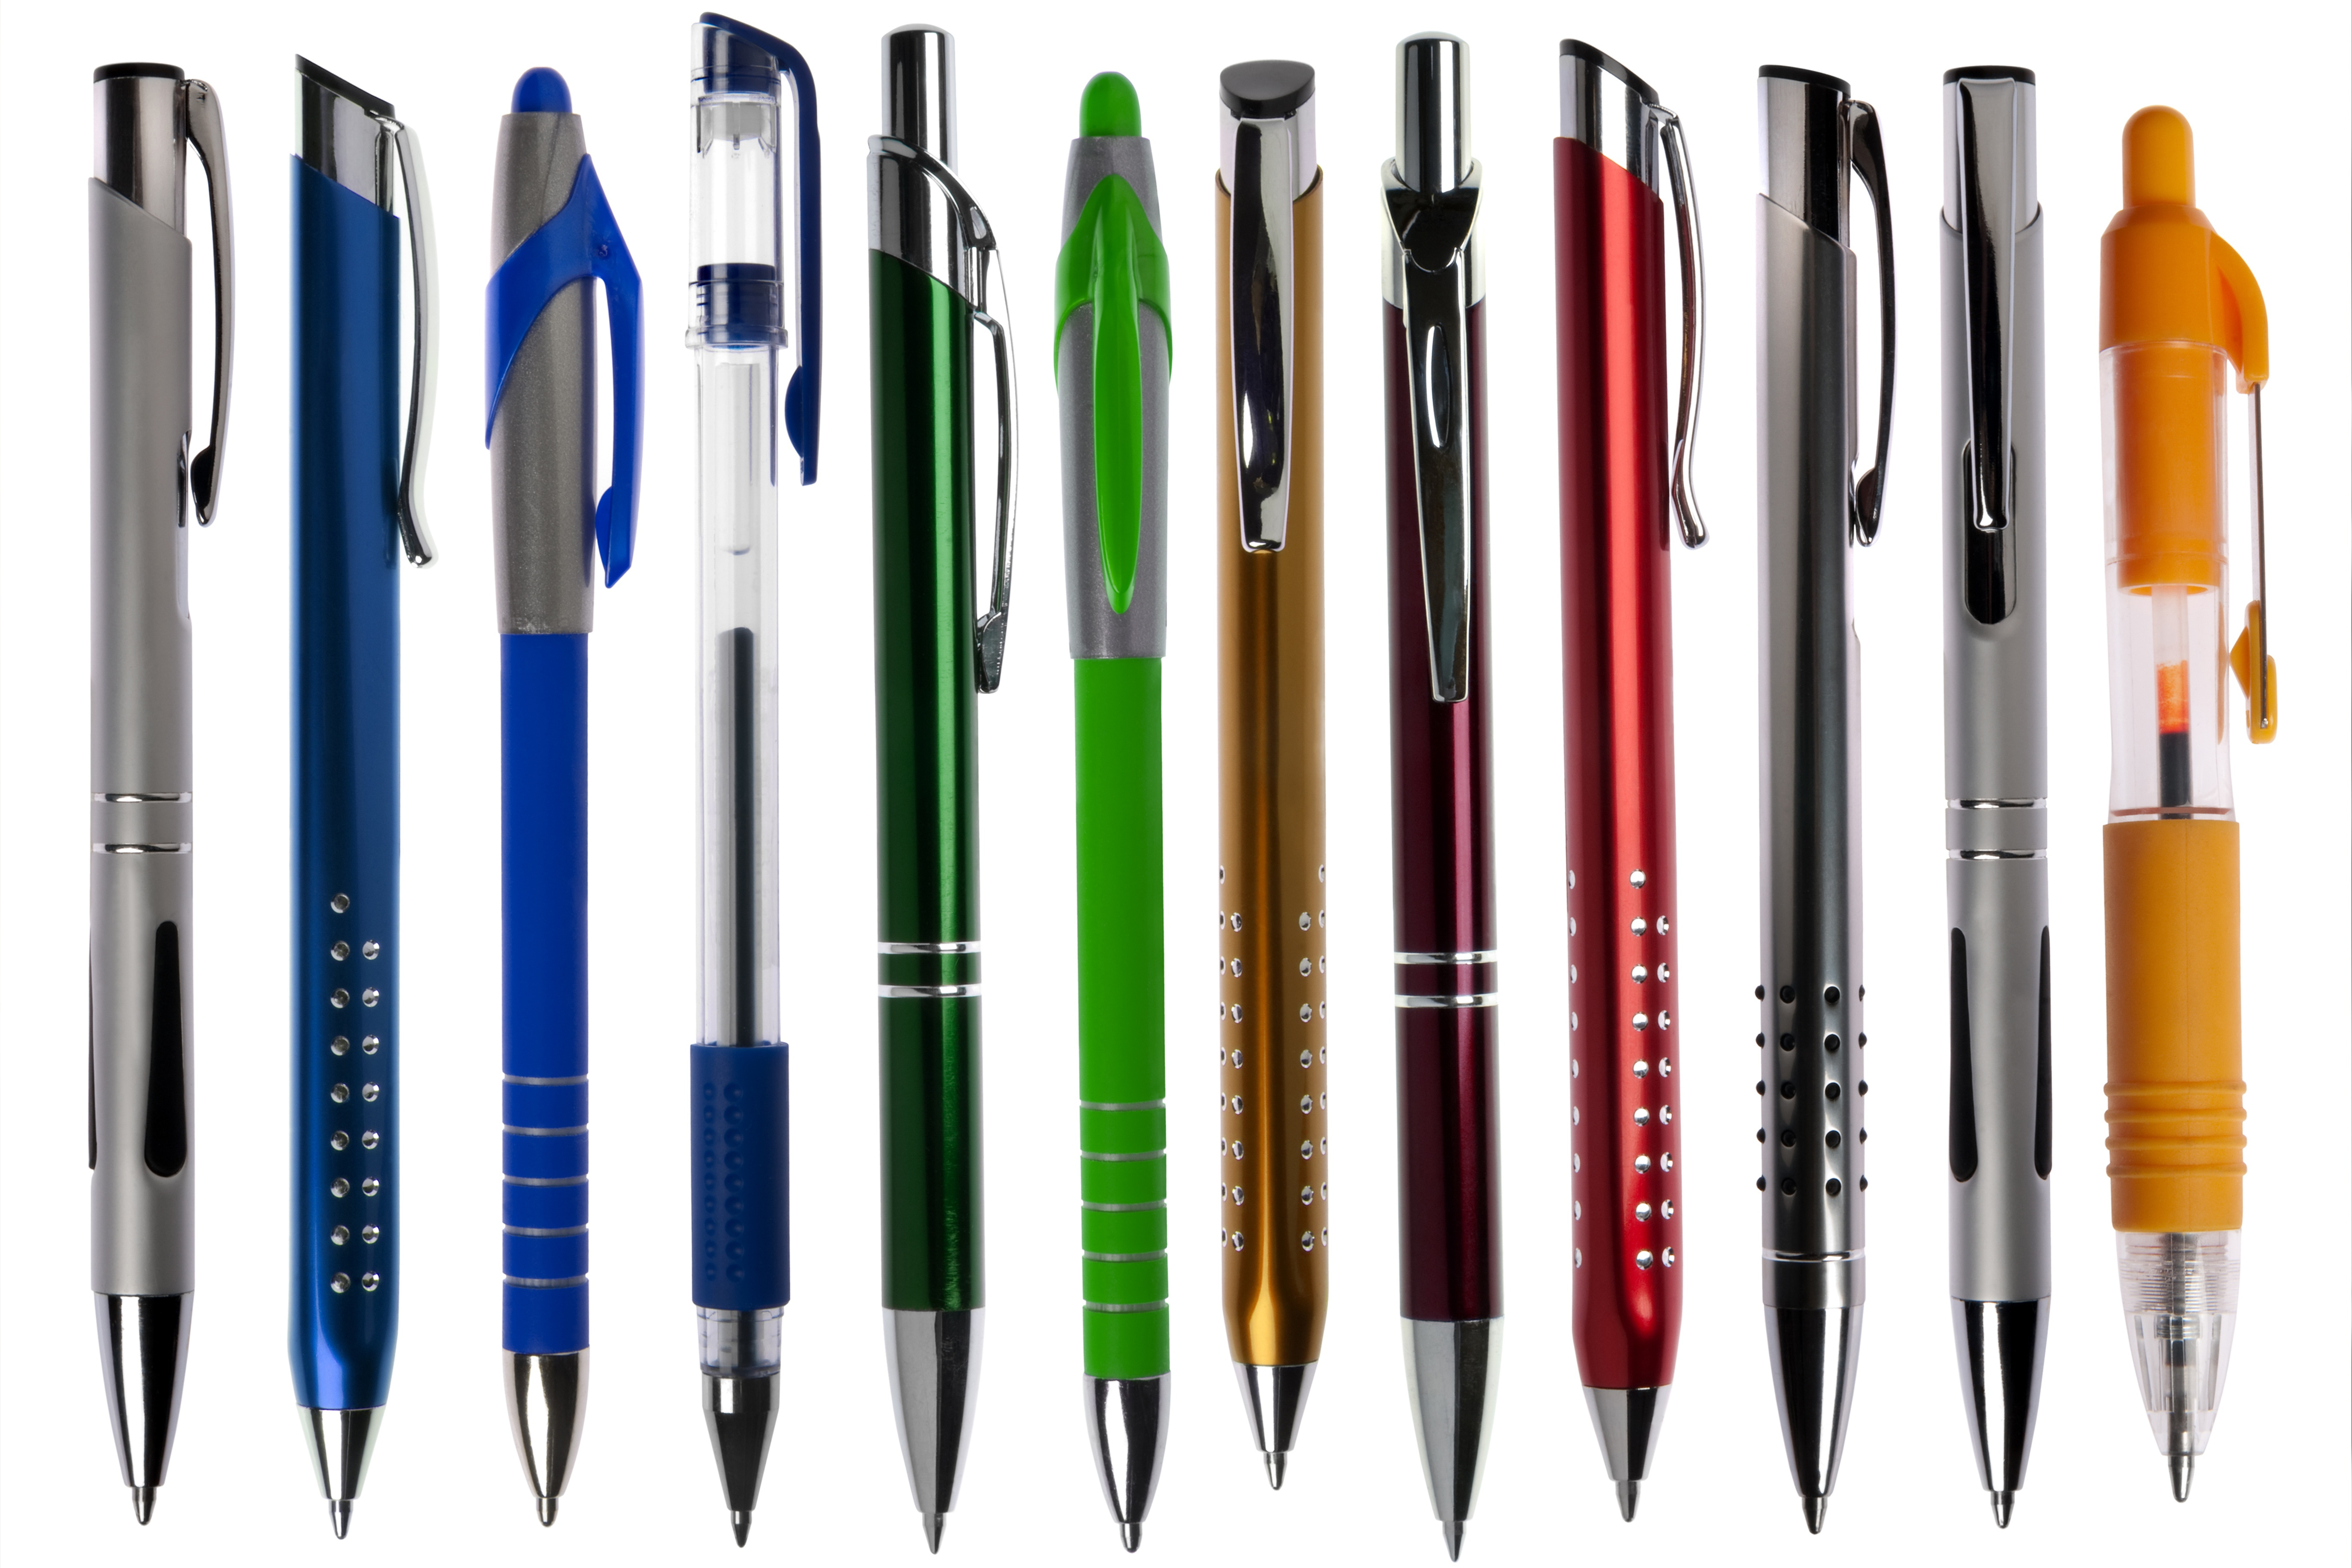 pens are perfect giveaways